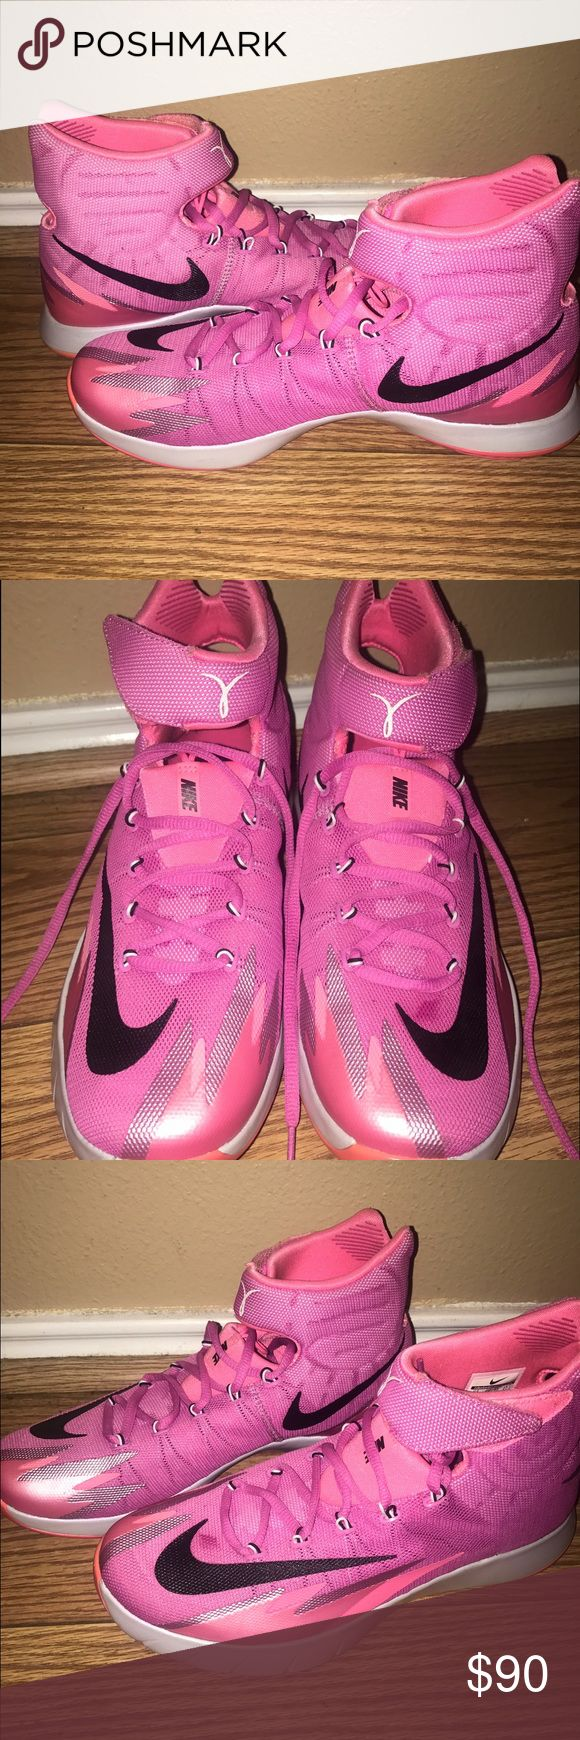 """NIKE ZOOM HYERREV """"THINK PINK"""" BASKETBALL SHOES Practically new. Only worn once. Excellent condition. Message me for any questions. Nike Shoes Athletic Shoes"""